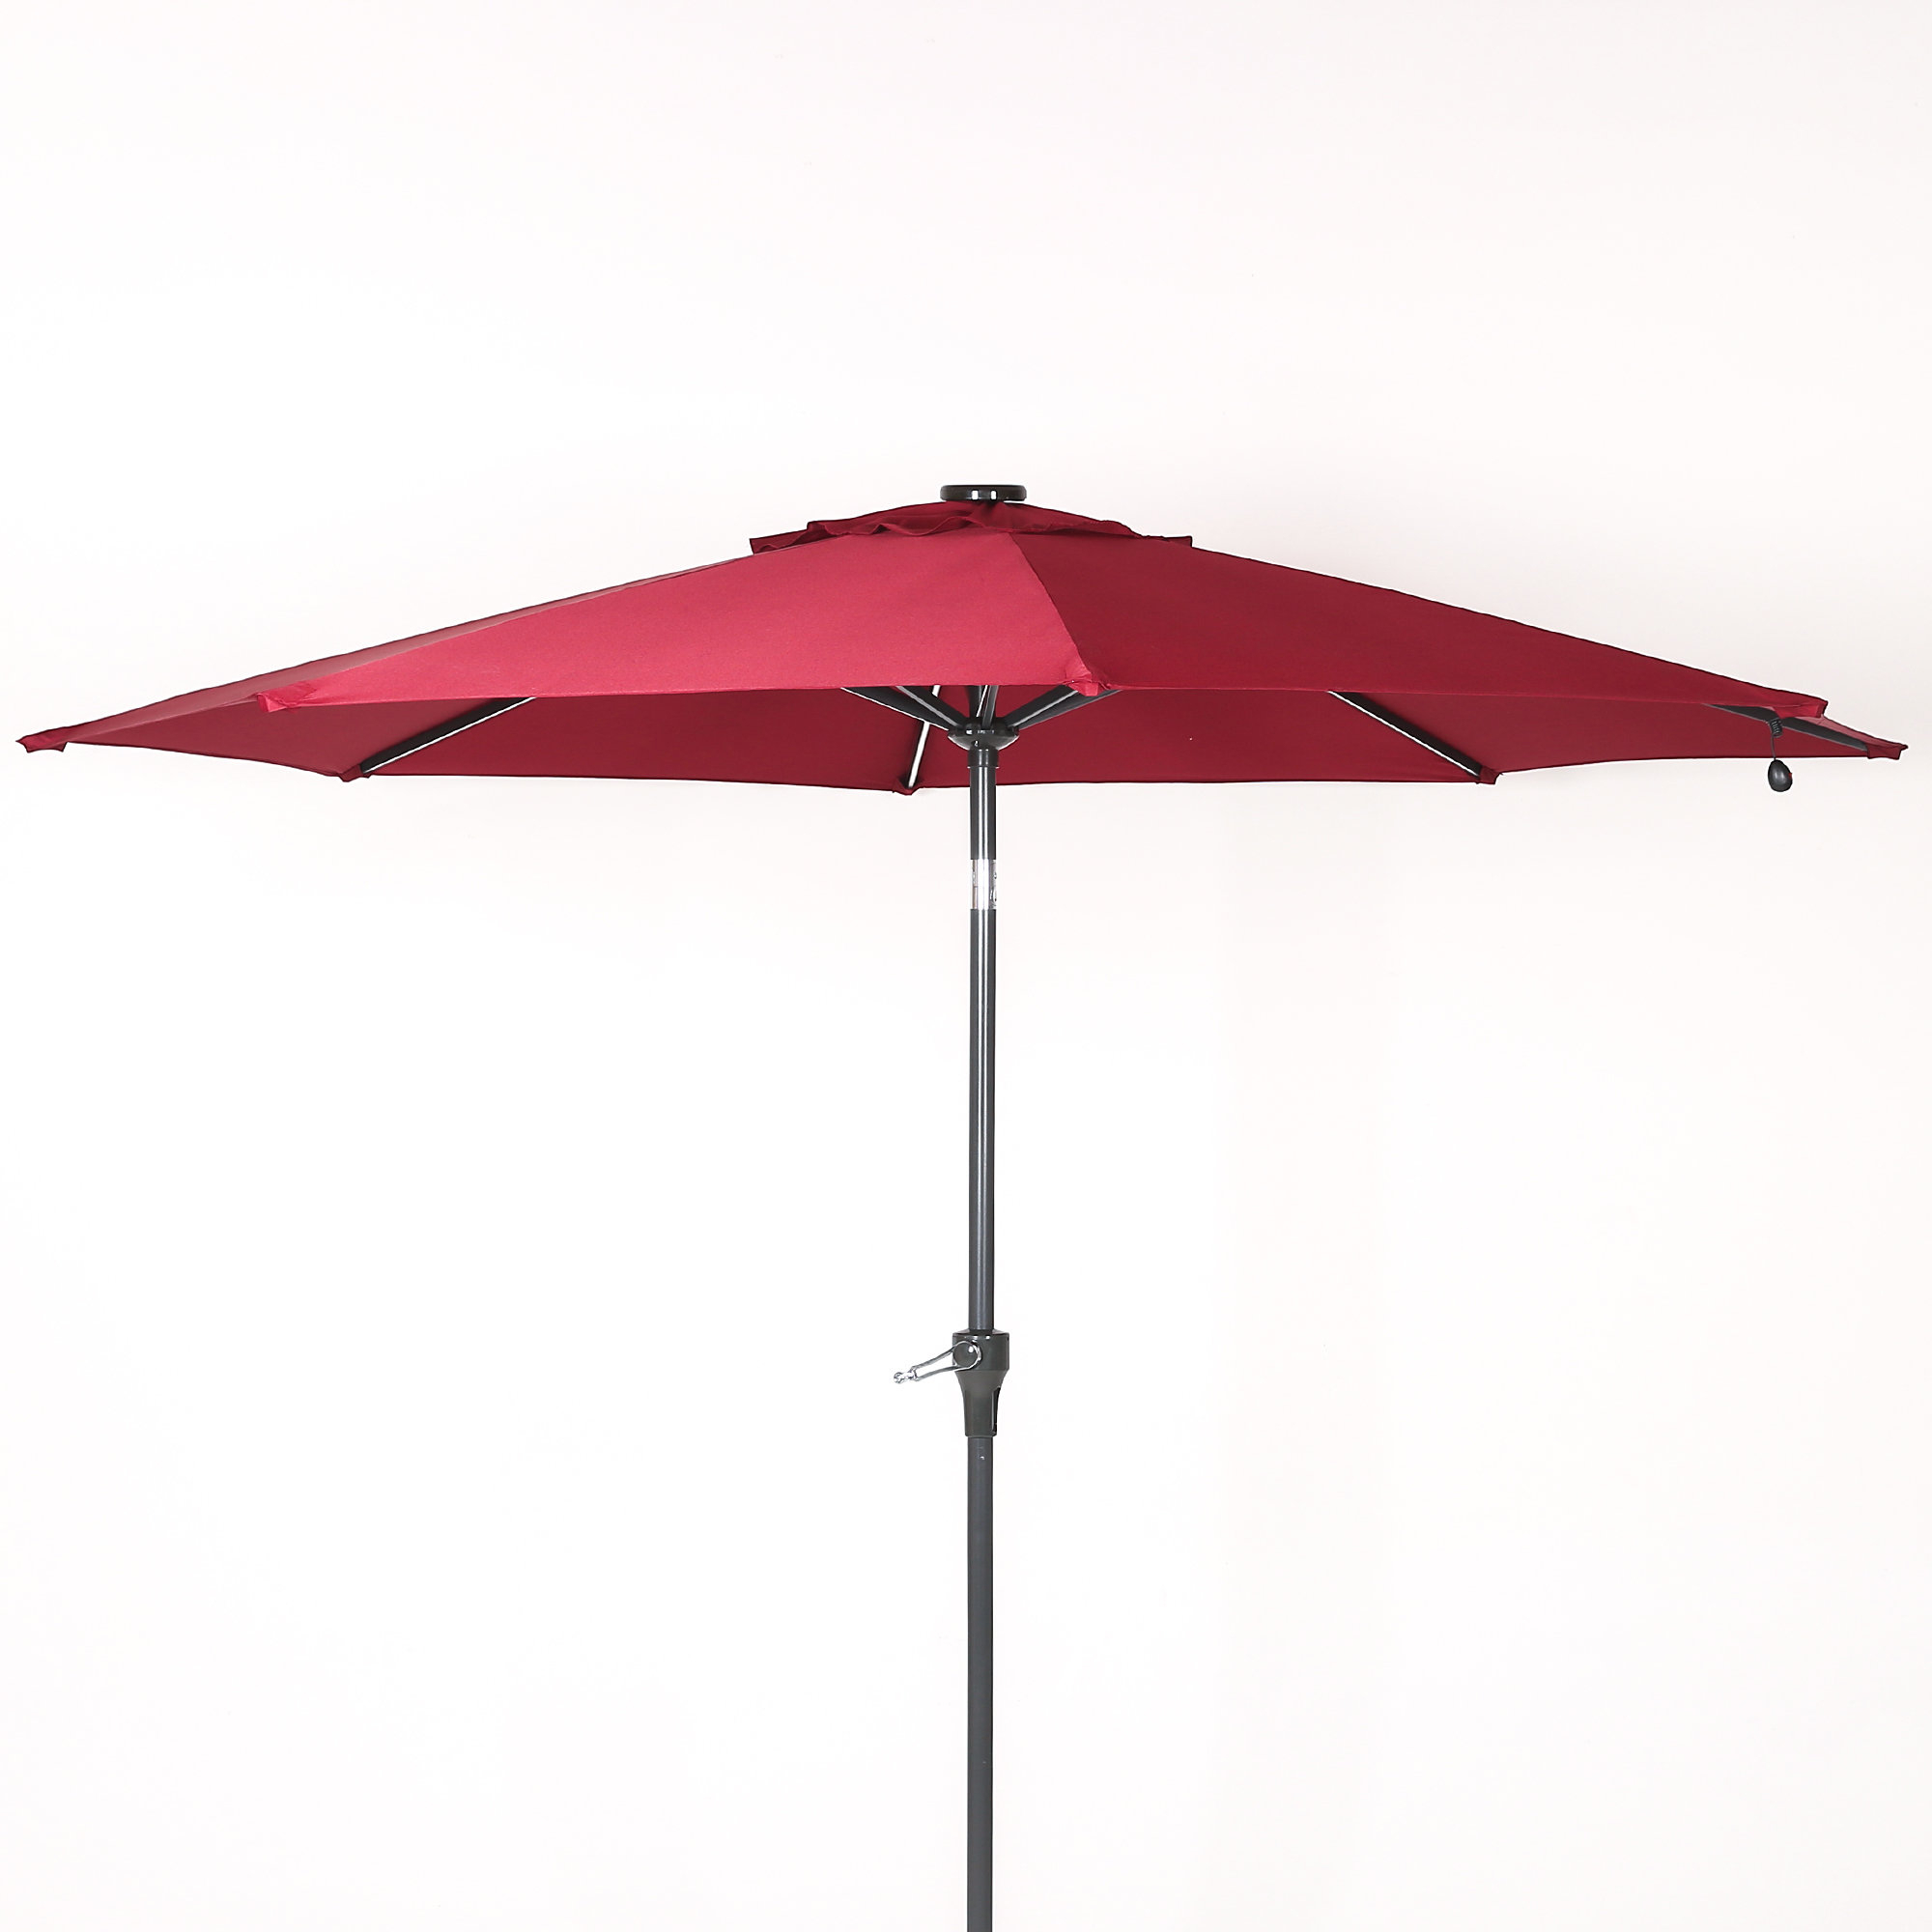 Olszewski 9' Market Umbrella Pertaining To 2019 Branscum Lighted Umbrellas (View 17 of 20)